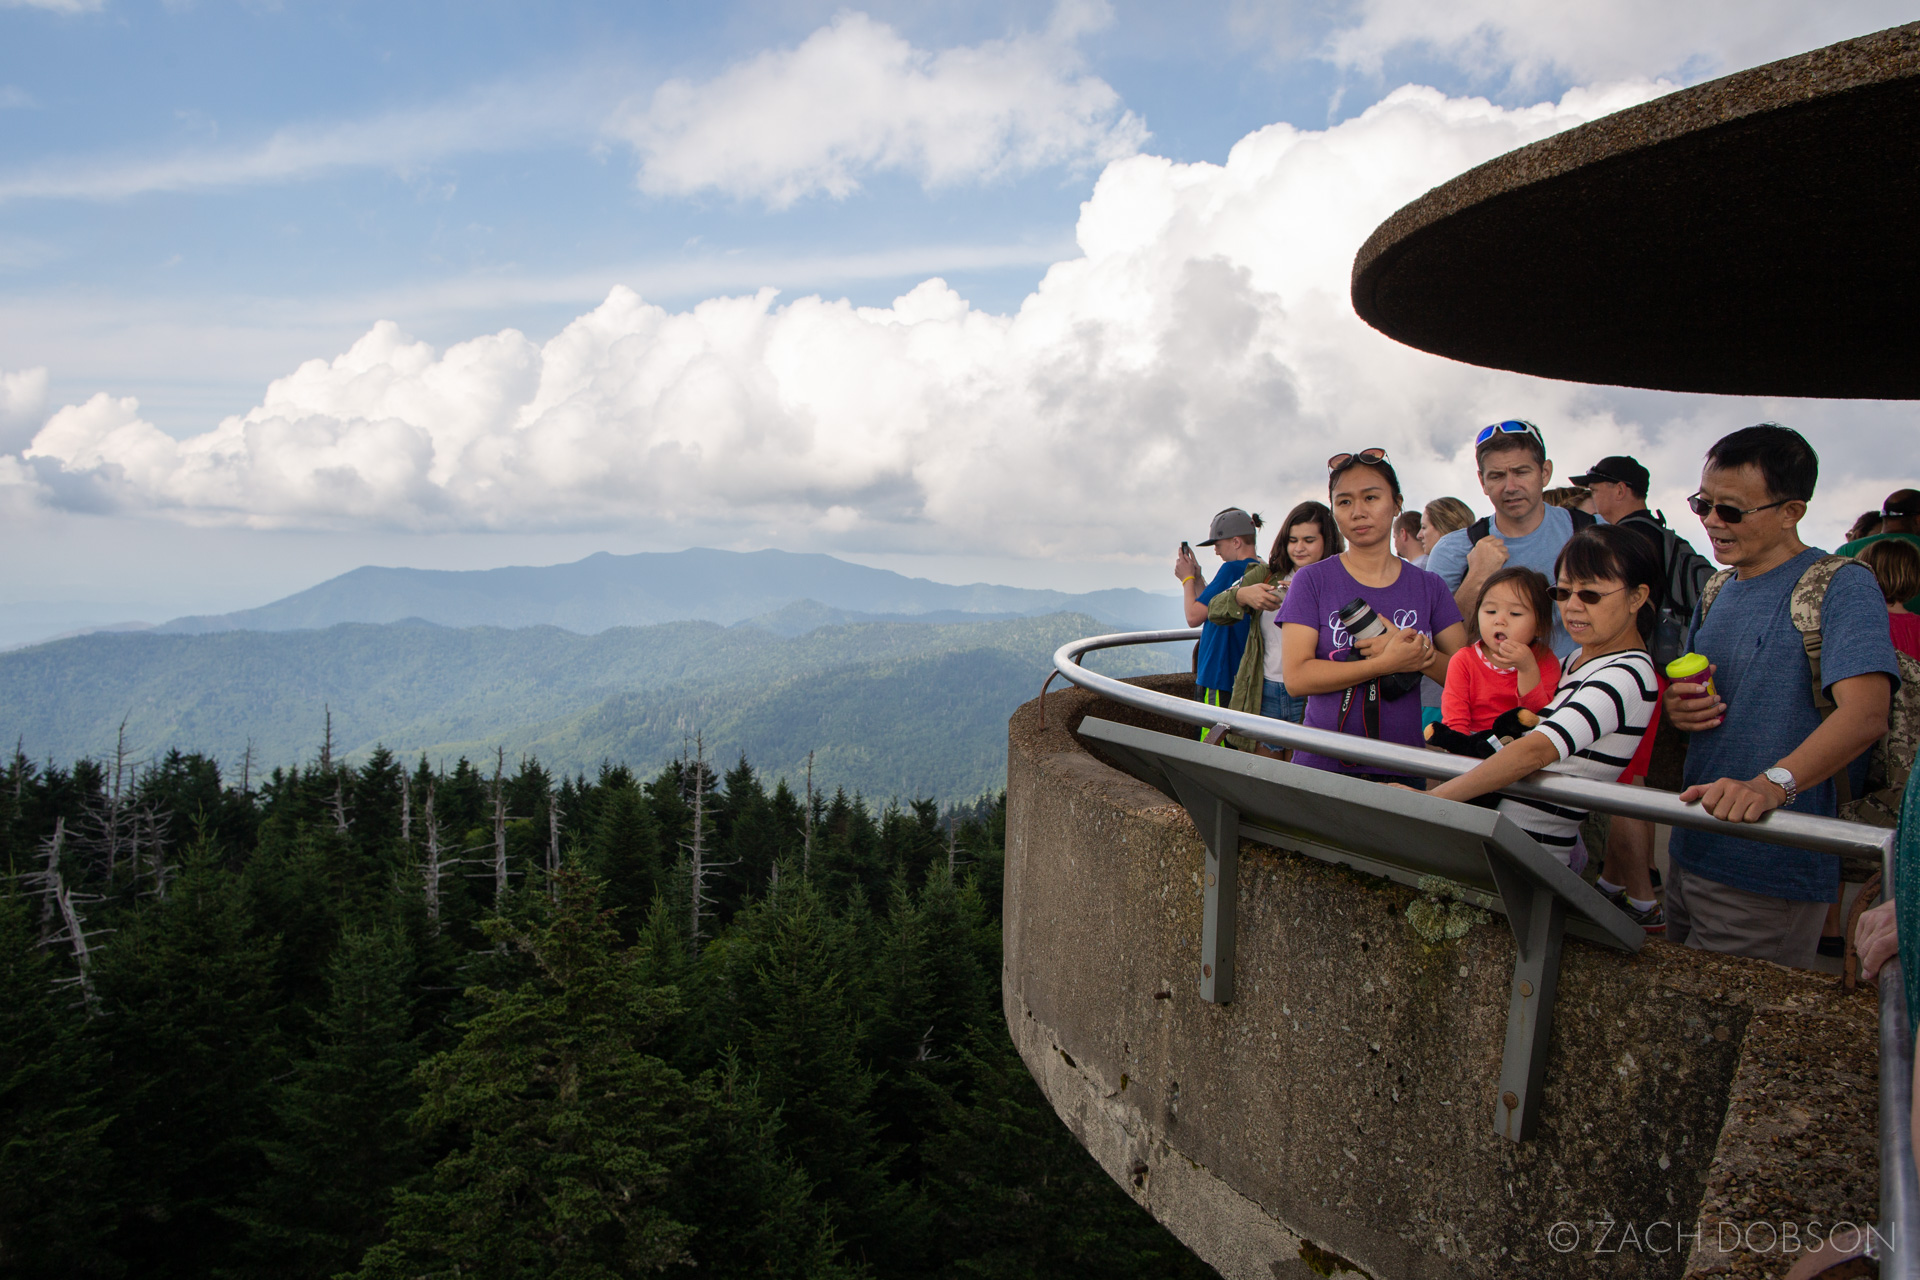 Great Smoky Mountains National Park Clingman's Dome sky view